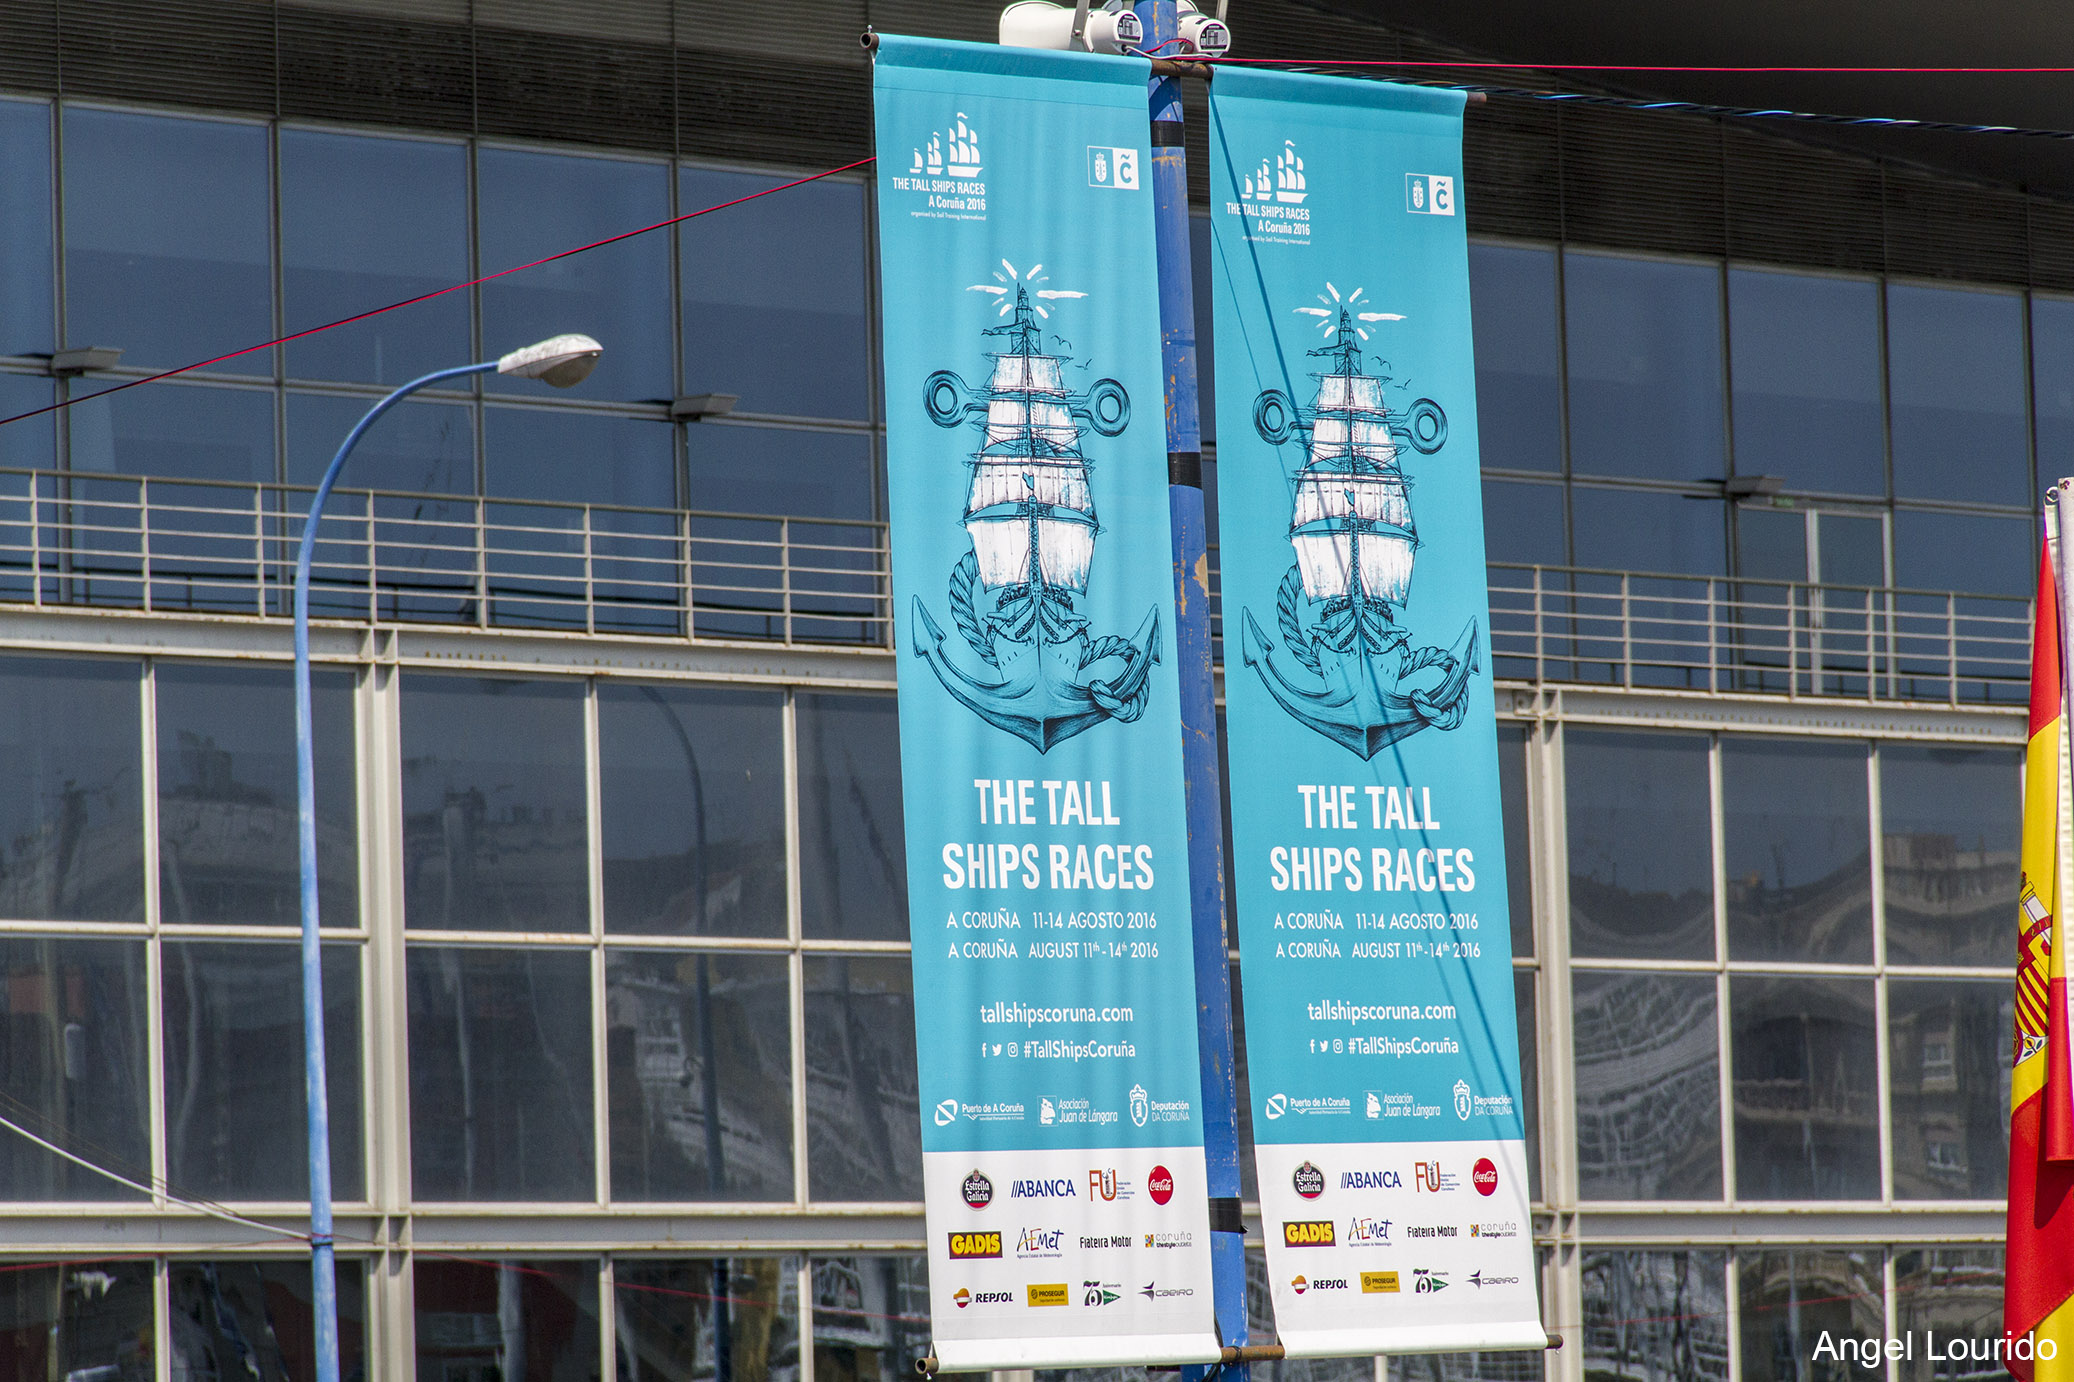 The tall ships races cartel